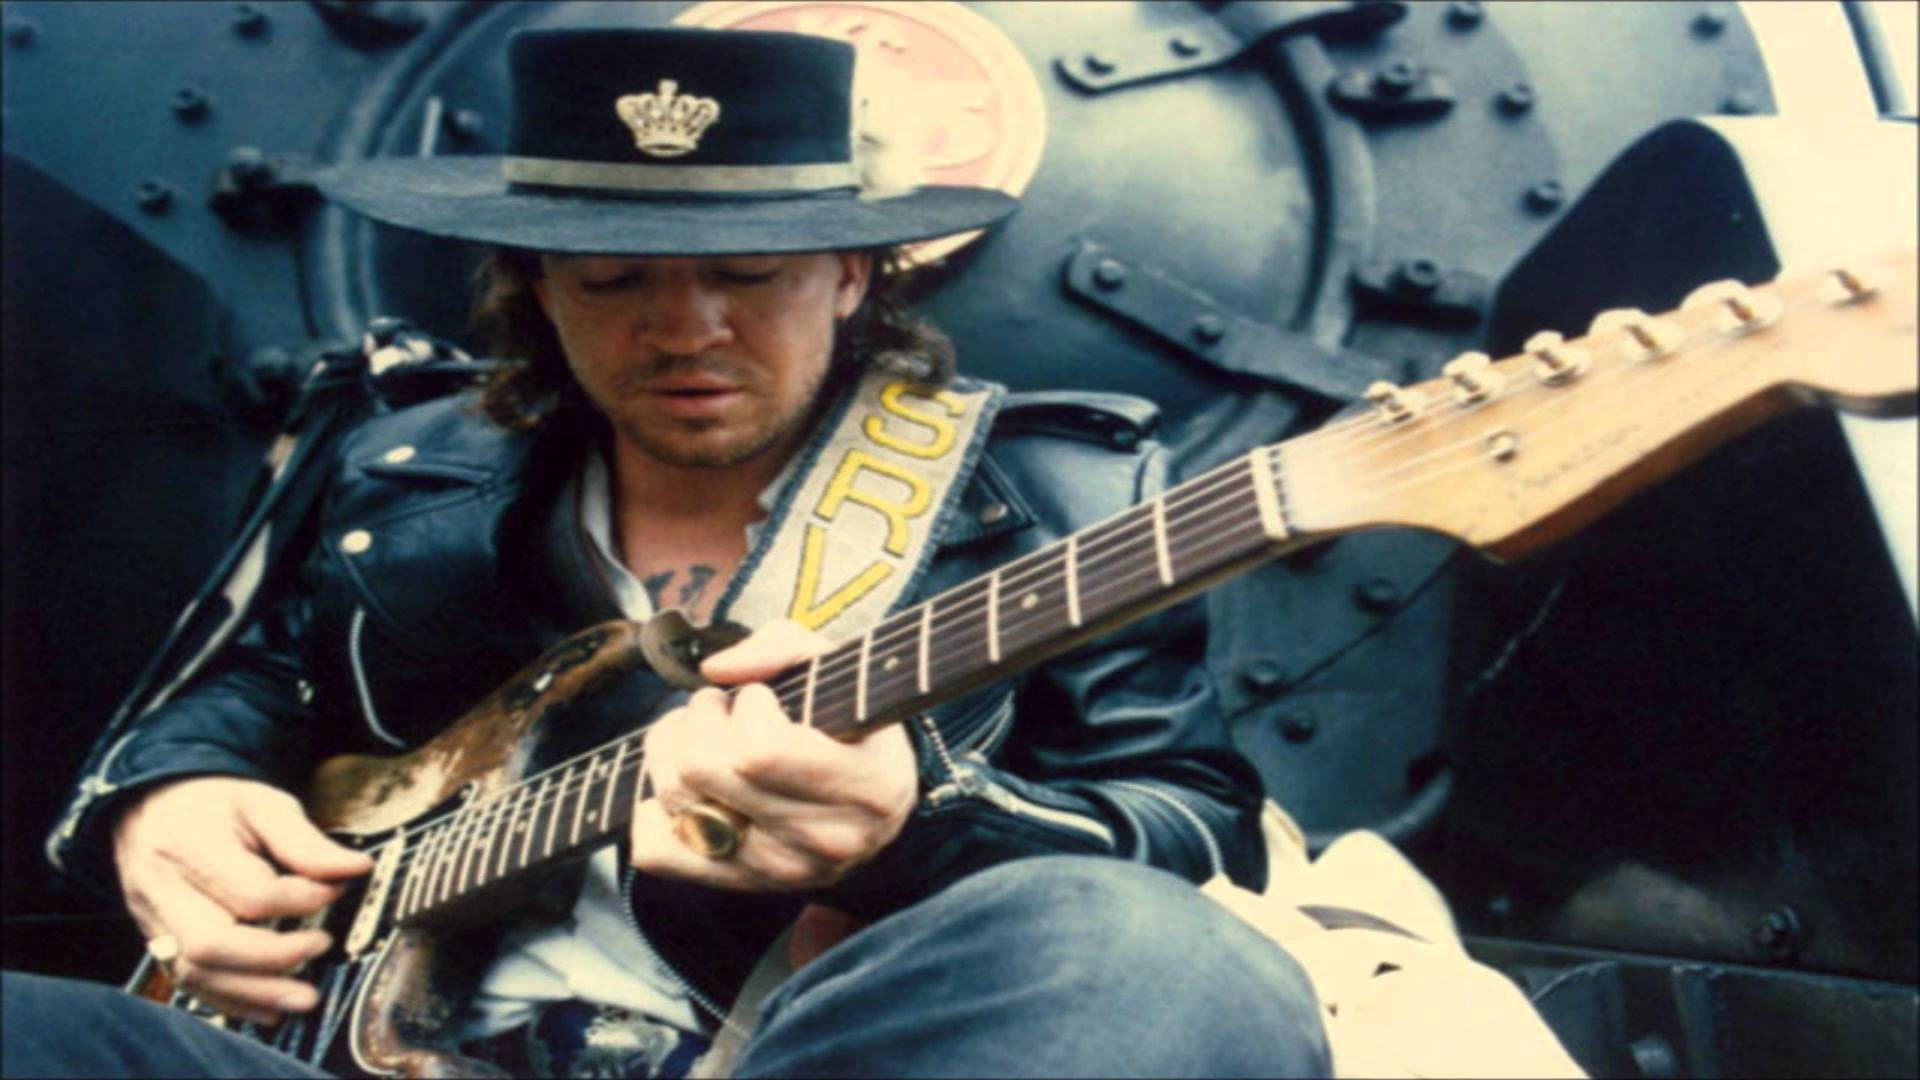 stevie ray vaughn essay This week marks 25 years since blues guitarist stevie ray vaughan's death on april 9, 1985, the texas legend performed for more than 42,000 fans who had gathered to help the astrodome celebrate.